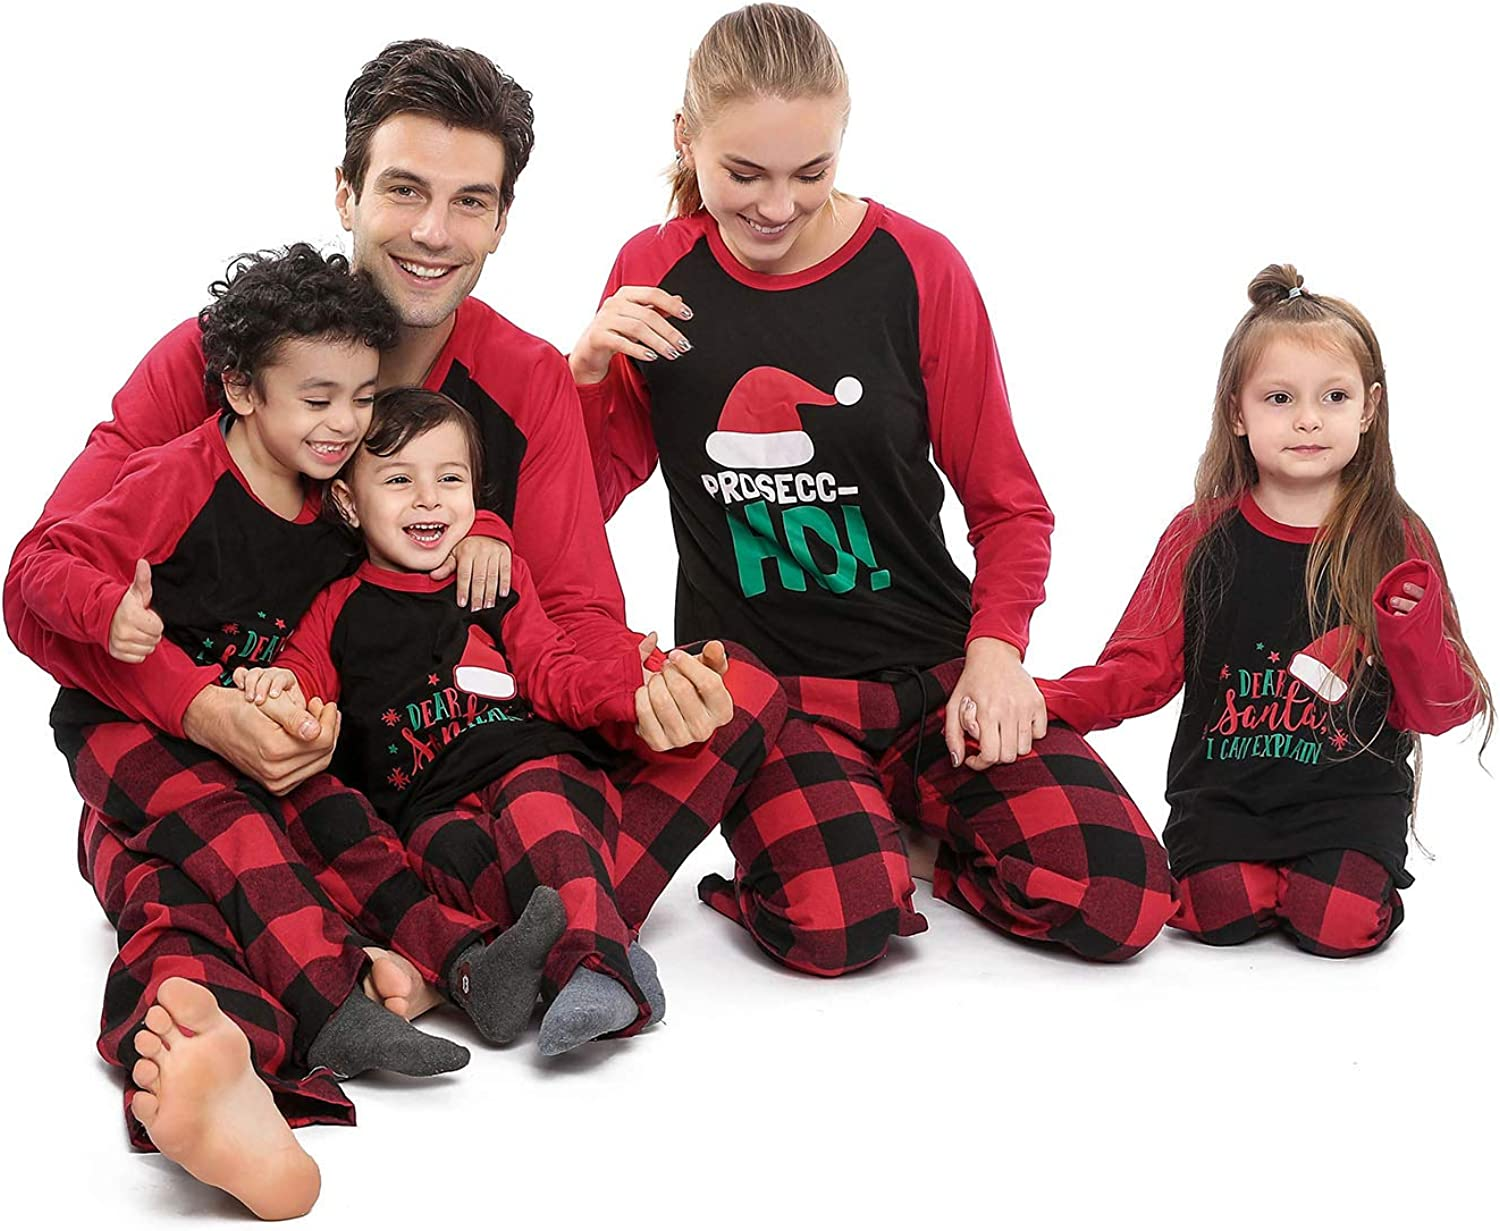 Matching Family Christmas Pajamas Funny Letter Printed Tops and Red Plaid Pants Holiday Sleepwear PJs Set